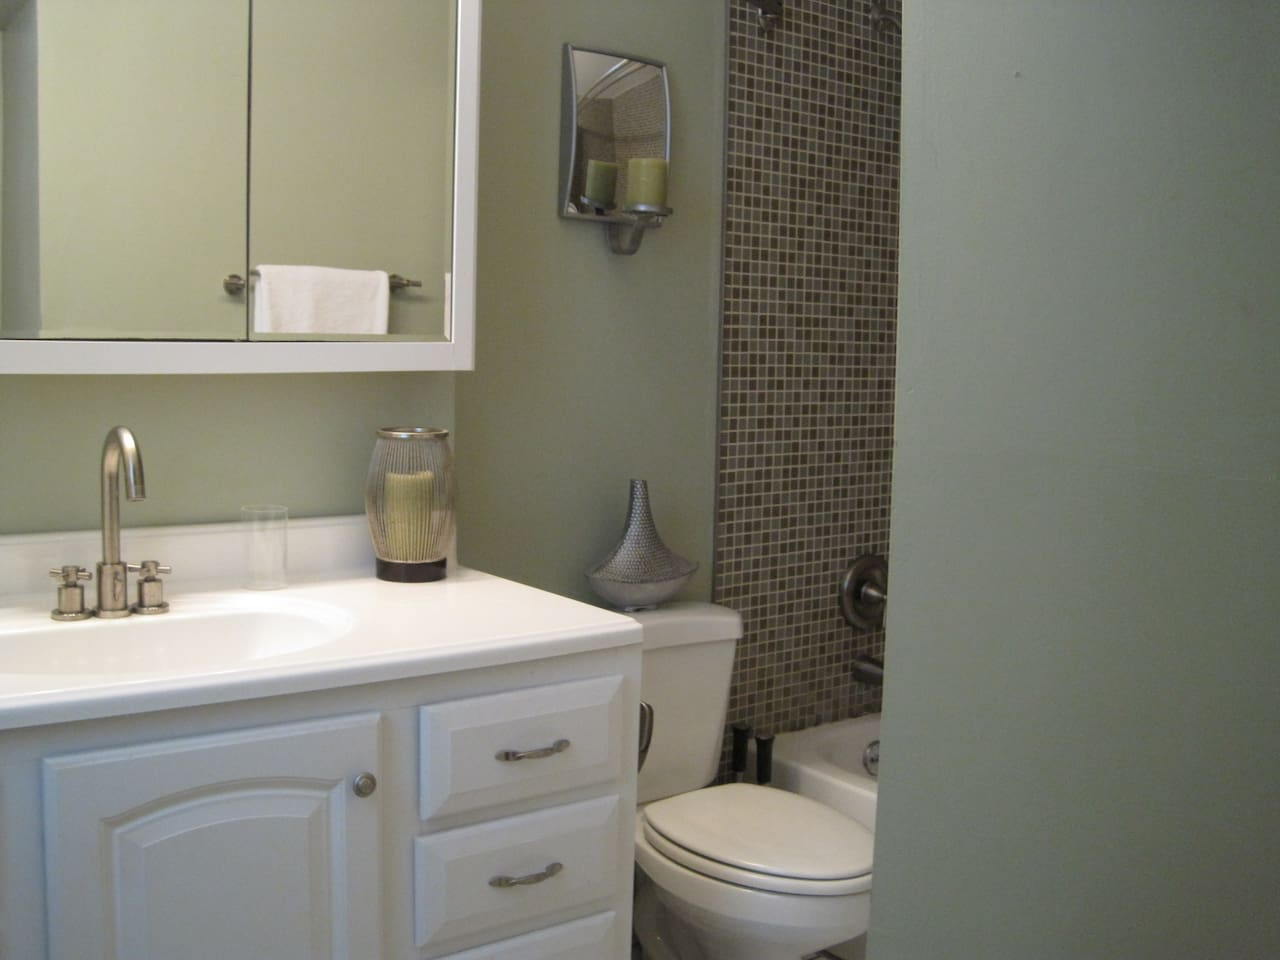 5 star super host great rate too apartments for rent in